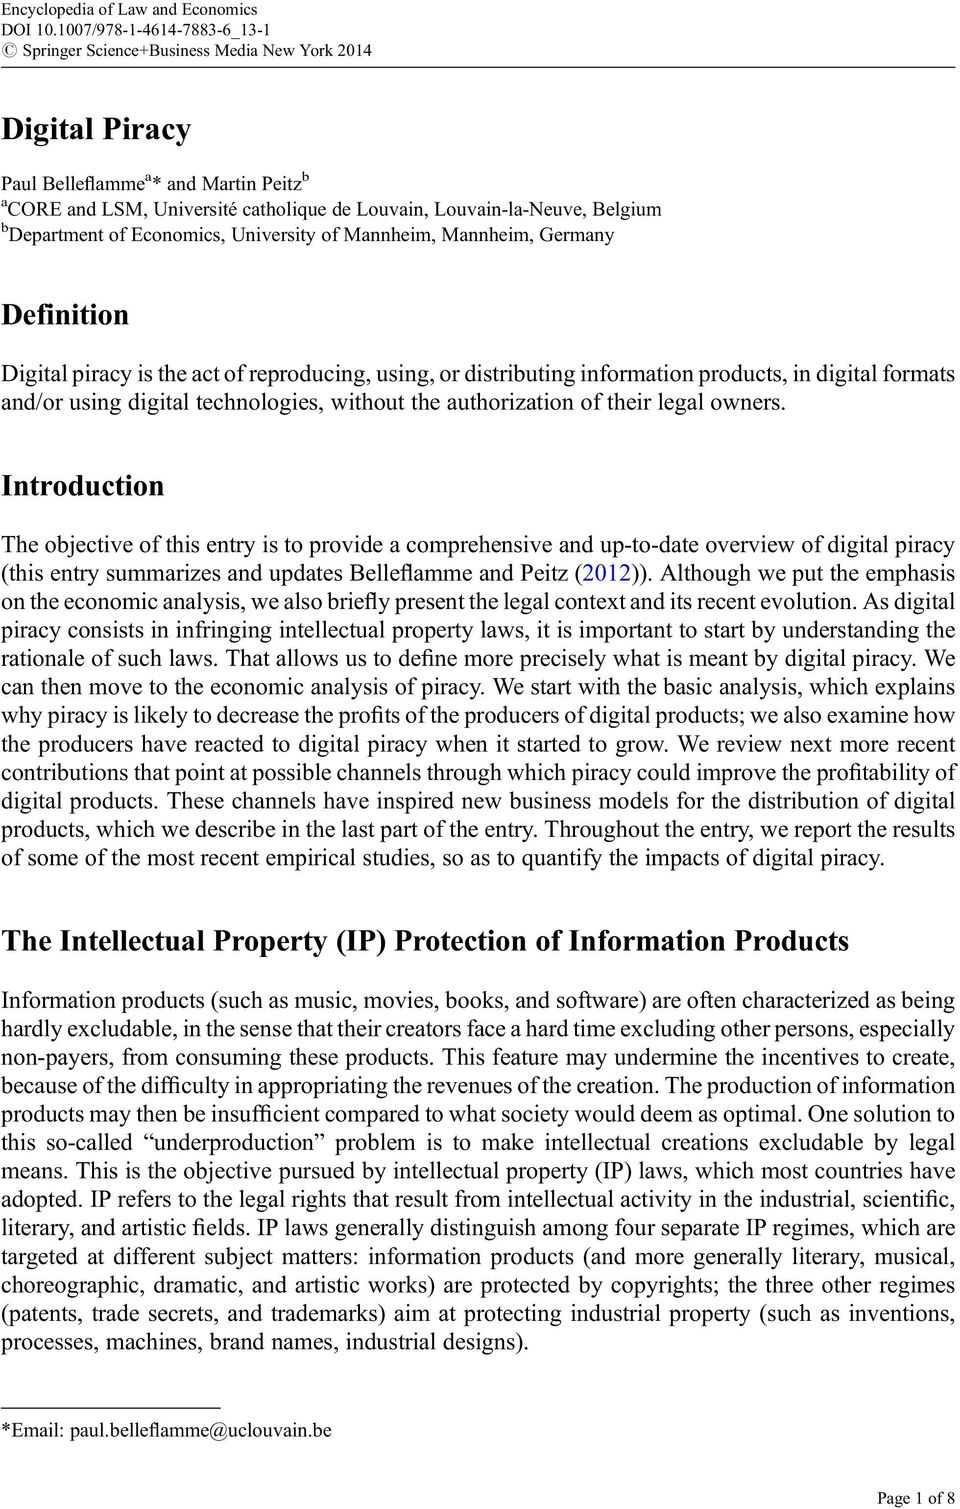 Introduction The objective of this entry is to provide a comprehensive and up-to-date overview of digital piracy (this entry summarizes and updates Belleflamme and Peitz (2012)).